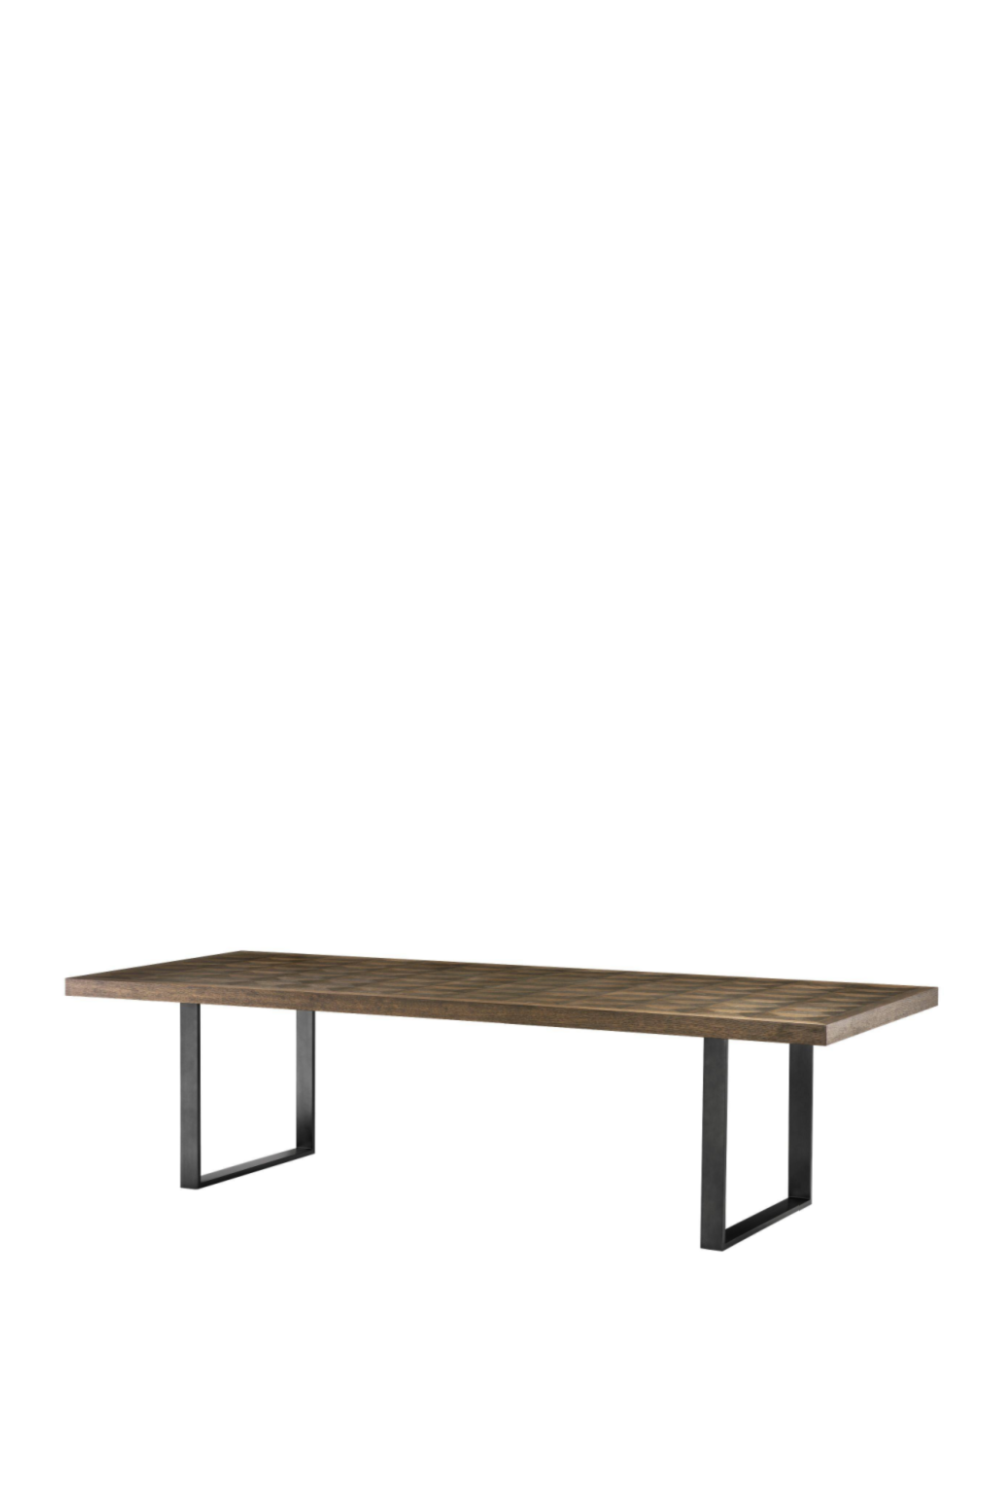 Rectangular Dining Table 120"